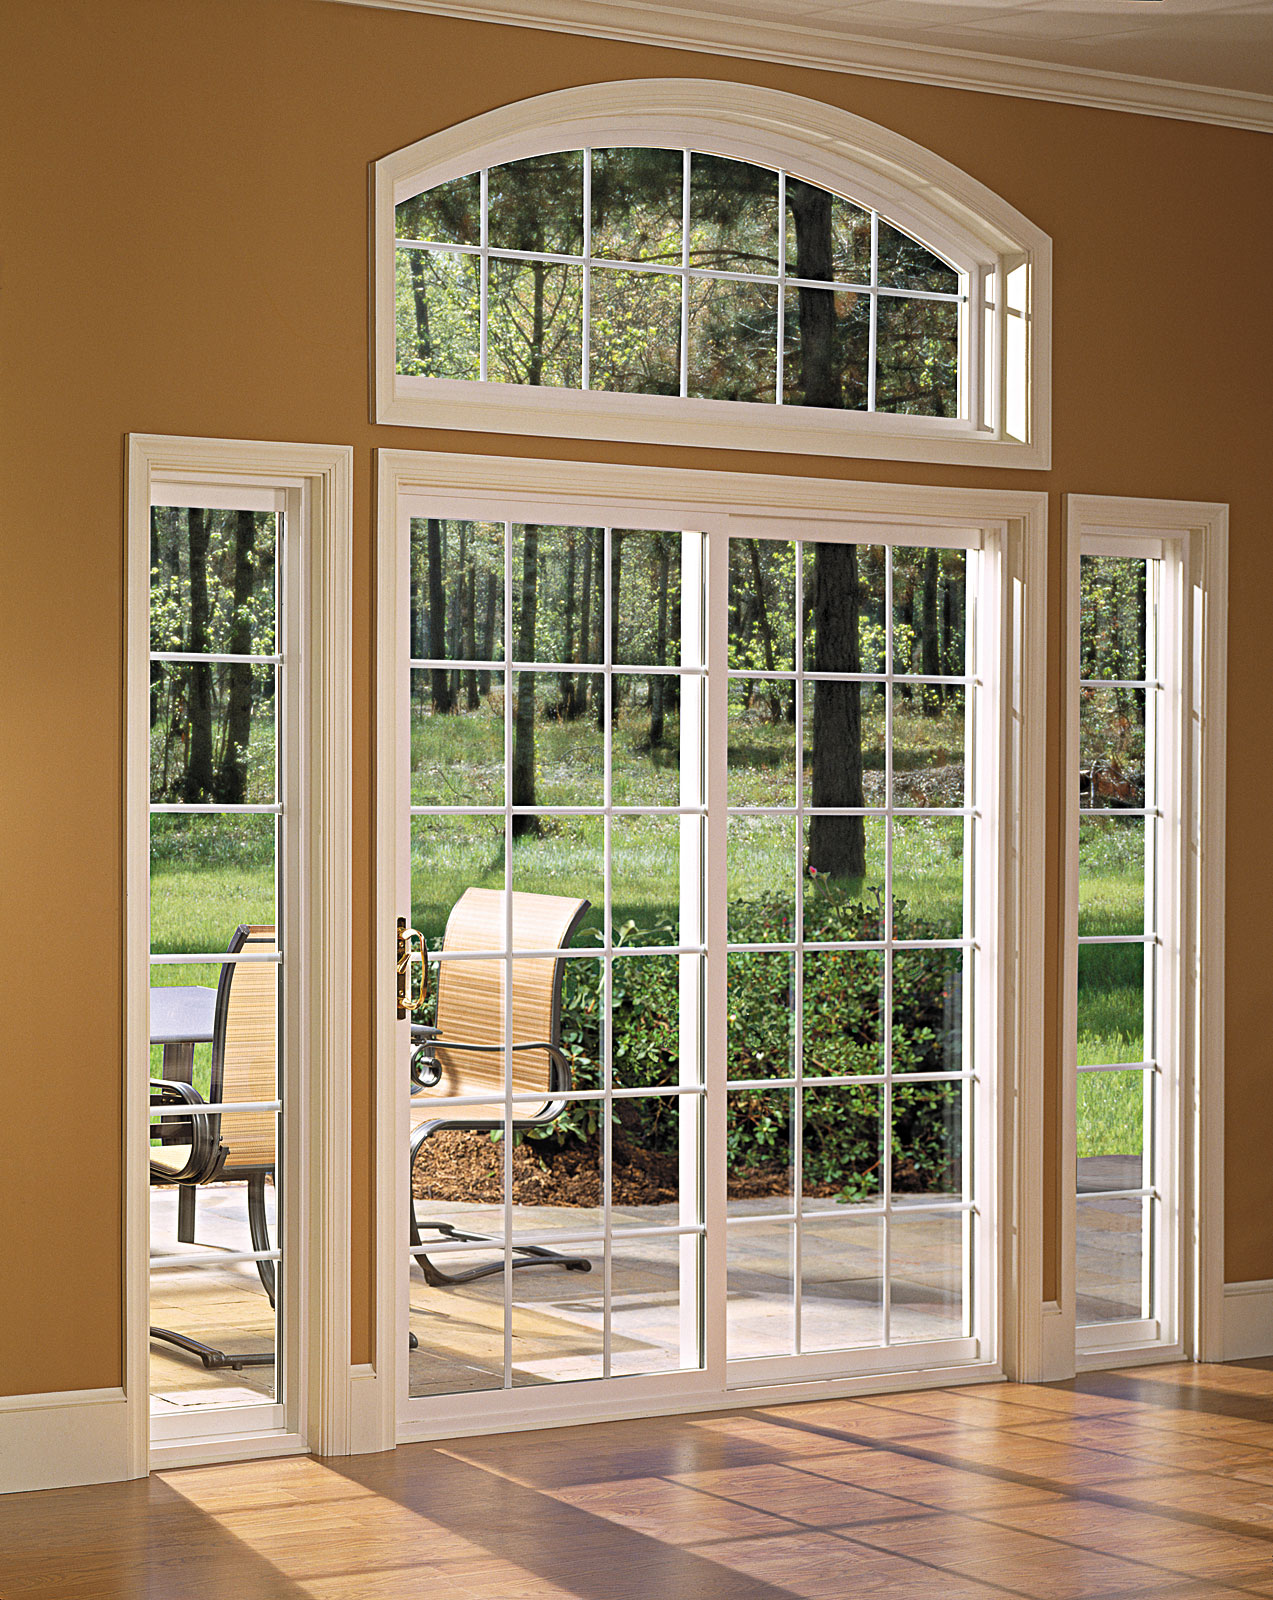 Patio Doors | ECO Windows & Doors